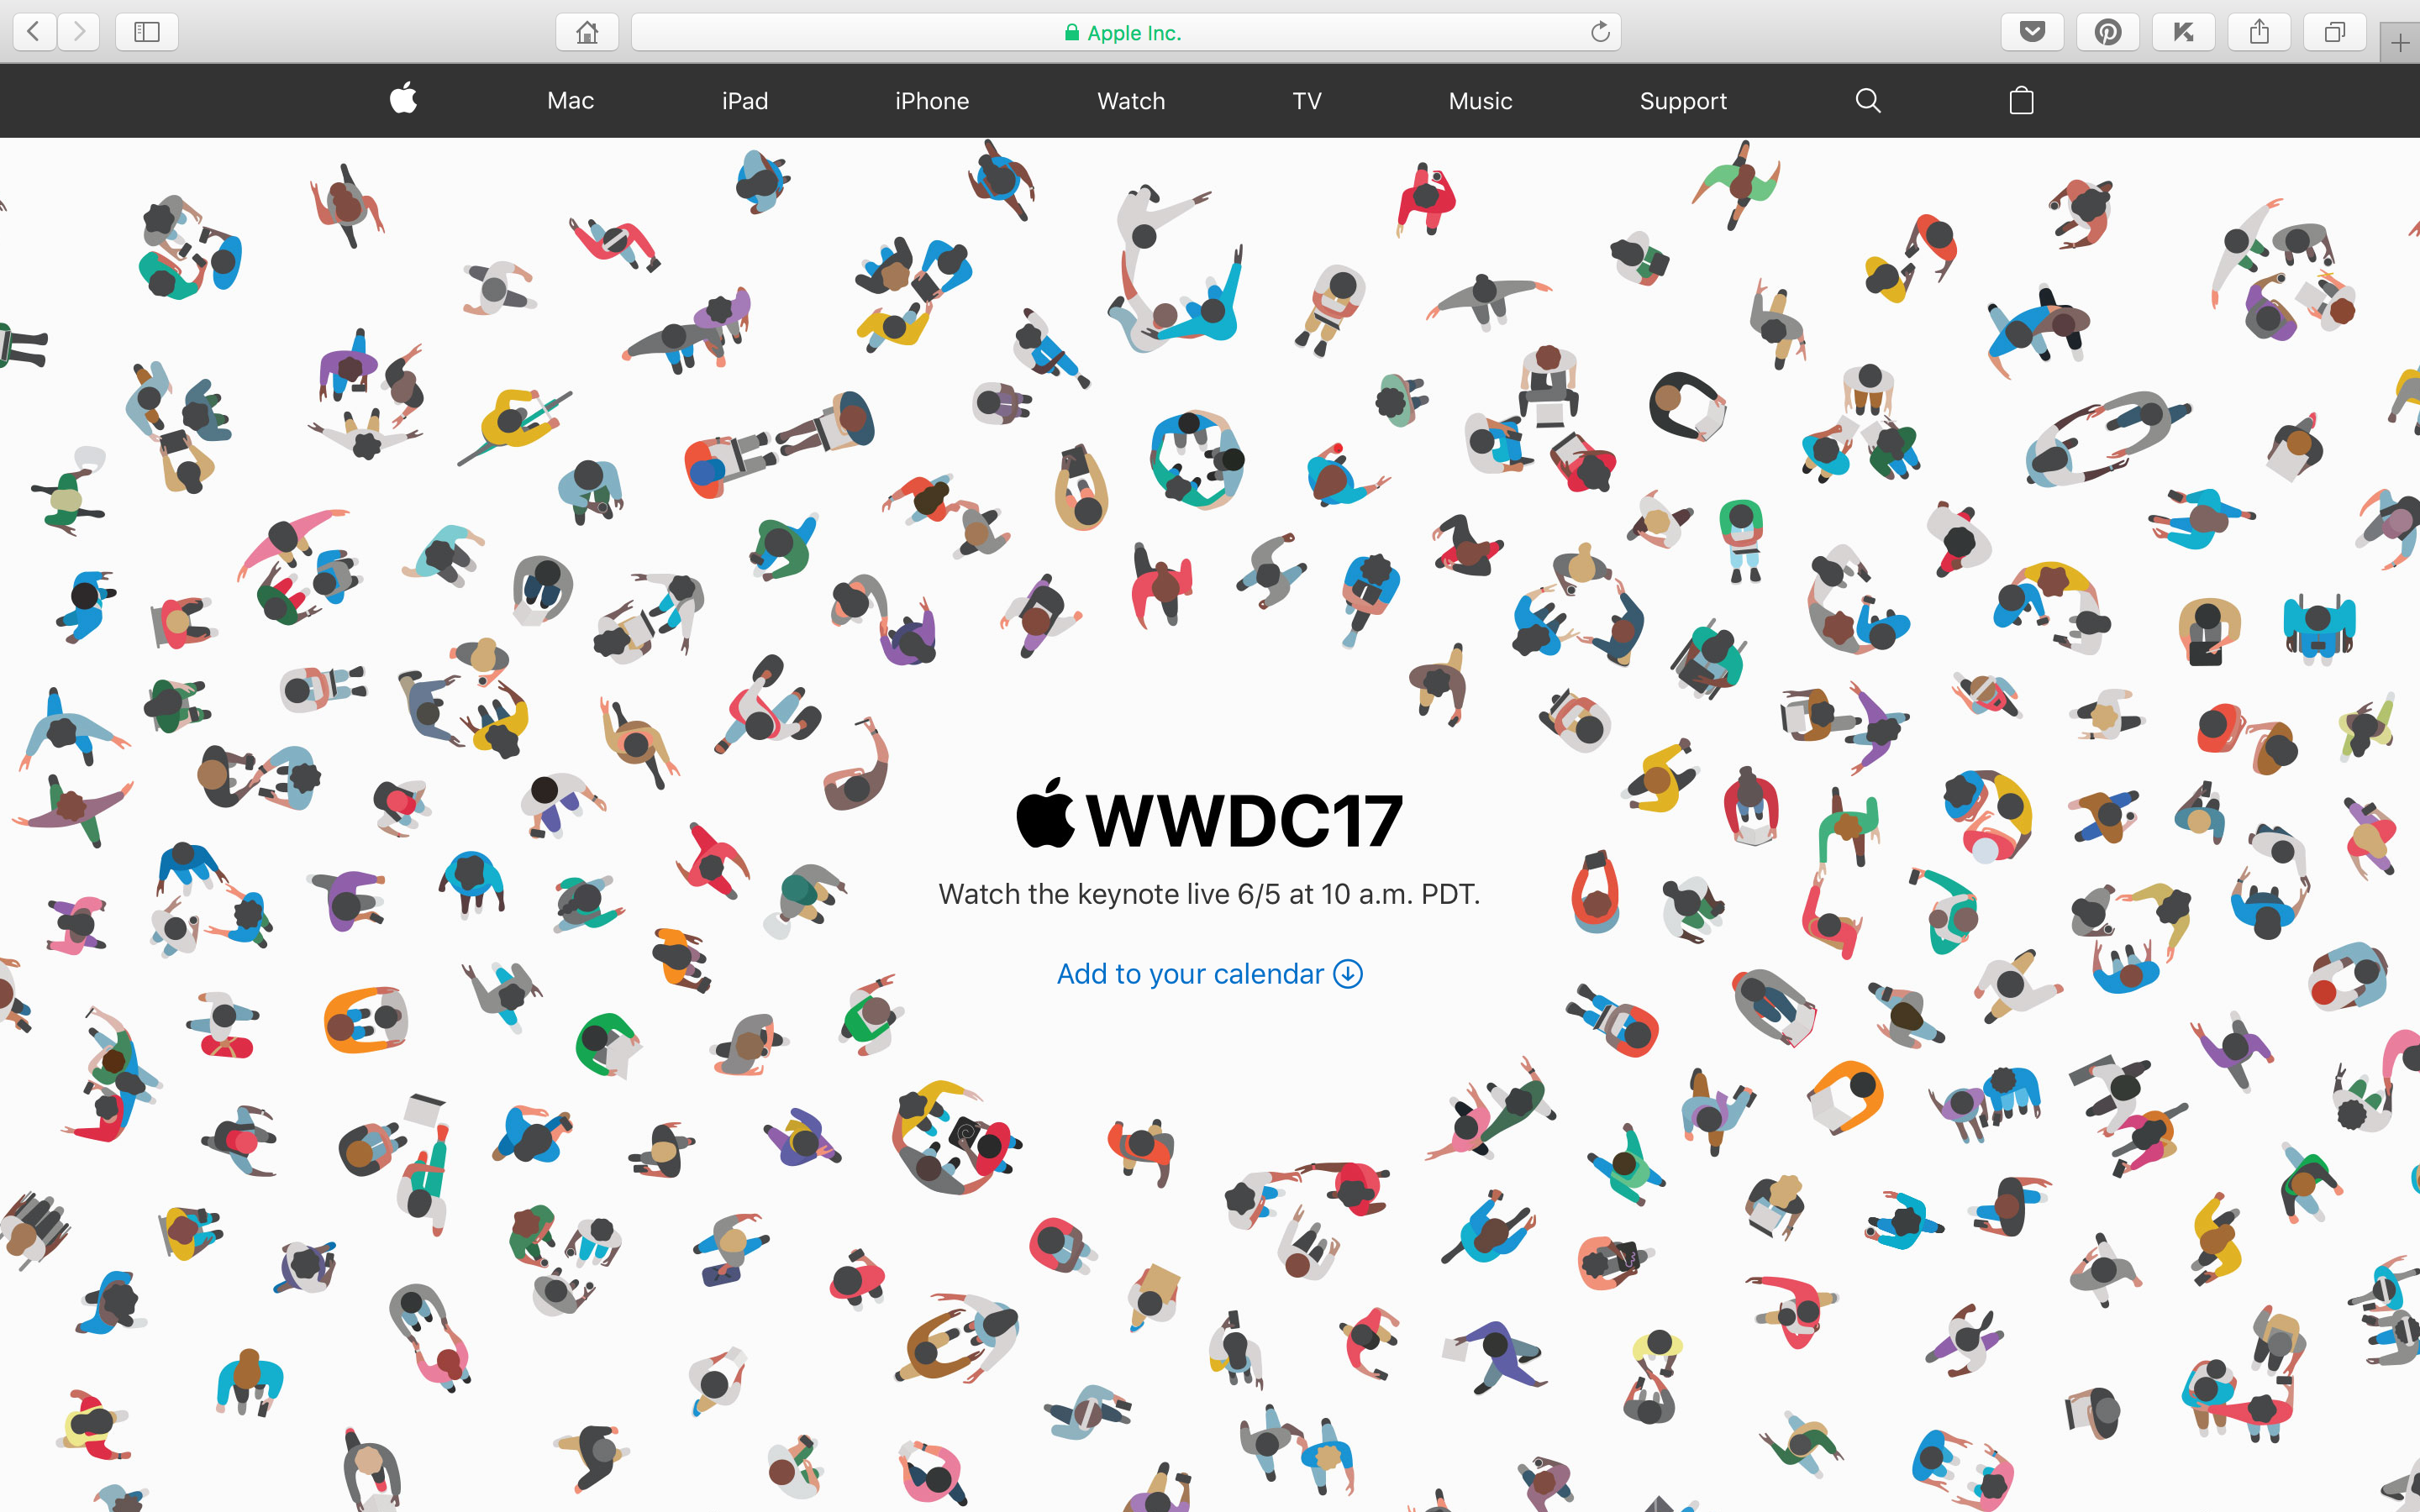 WWDC(WorldWide Developers Conference)2017